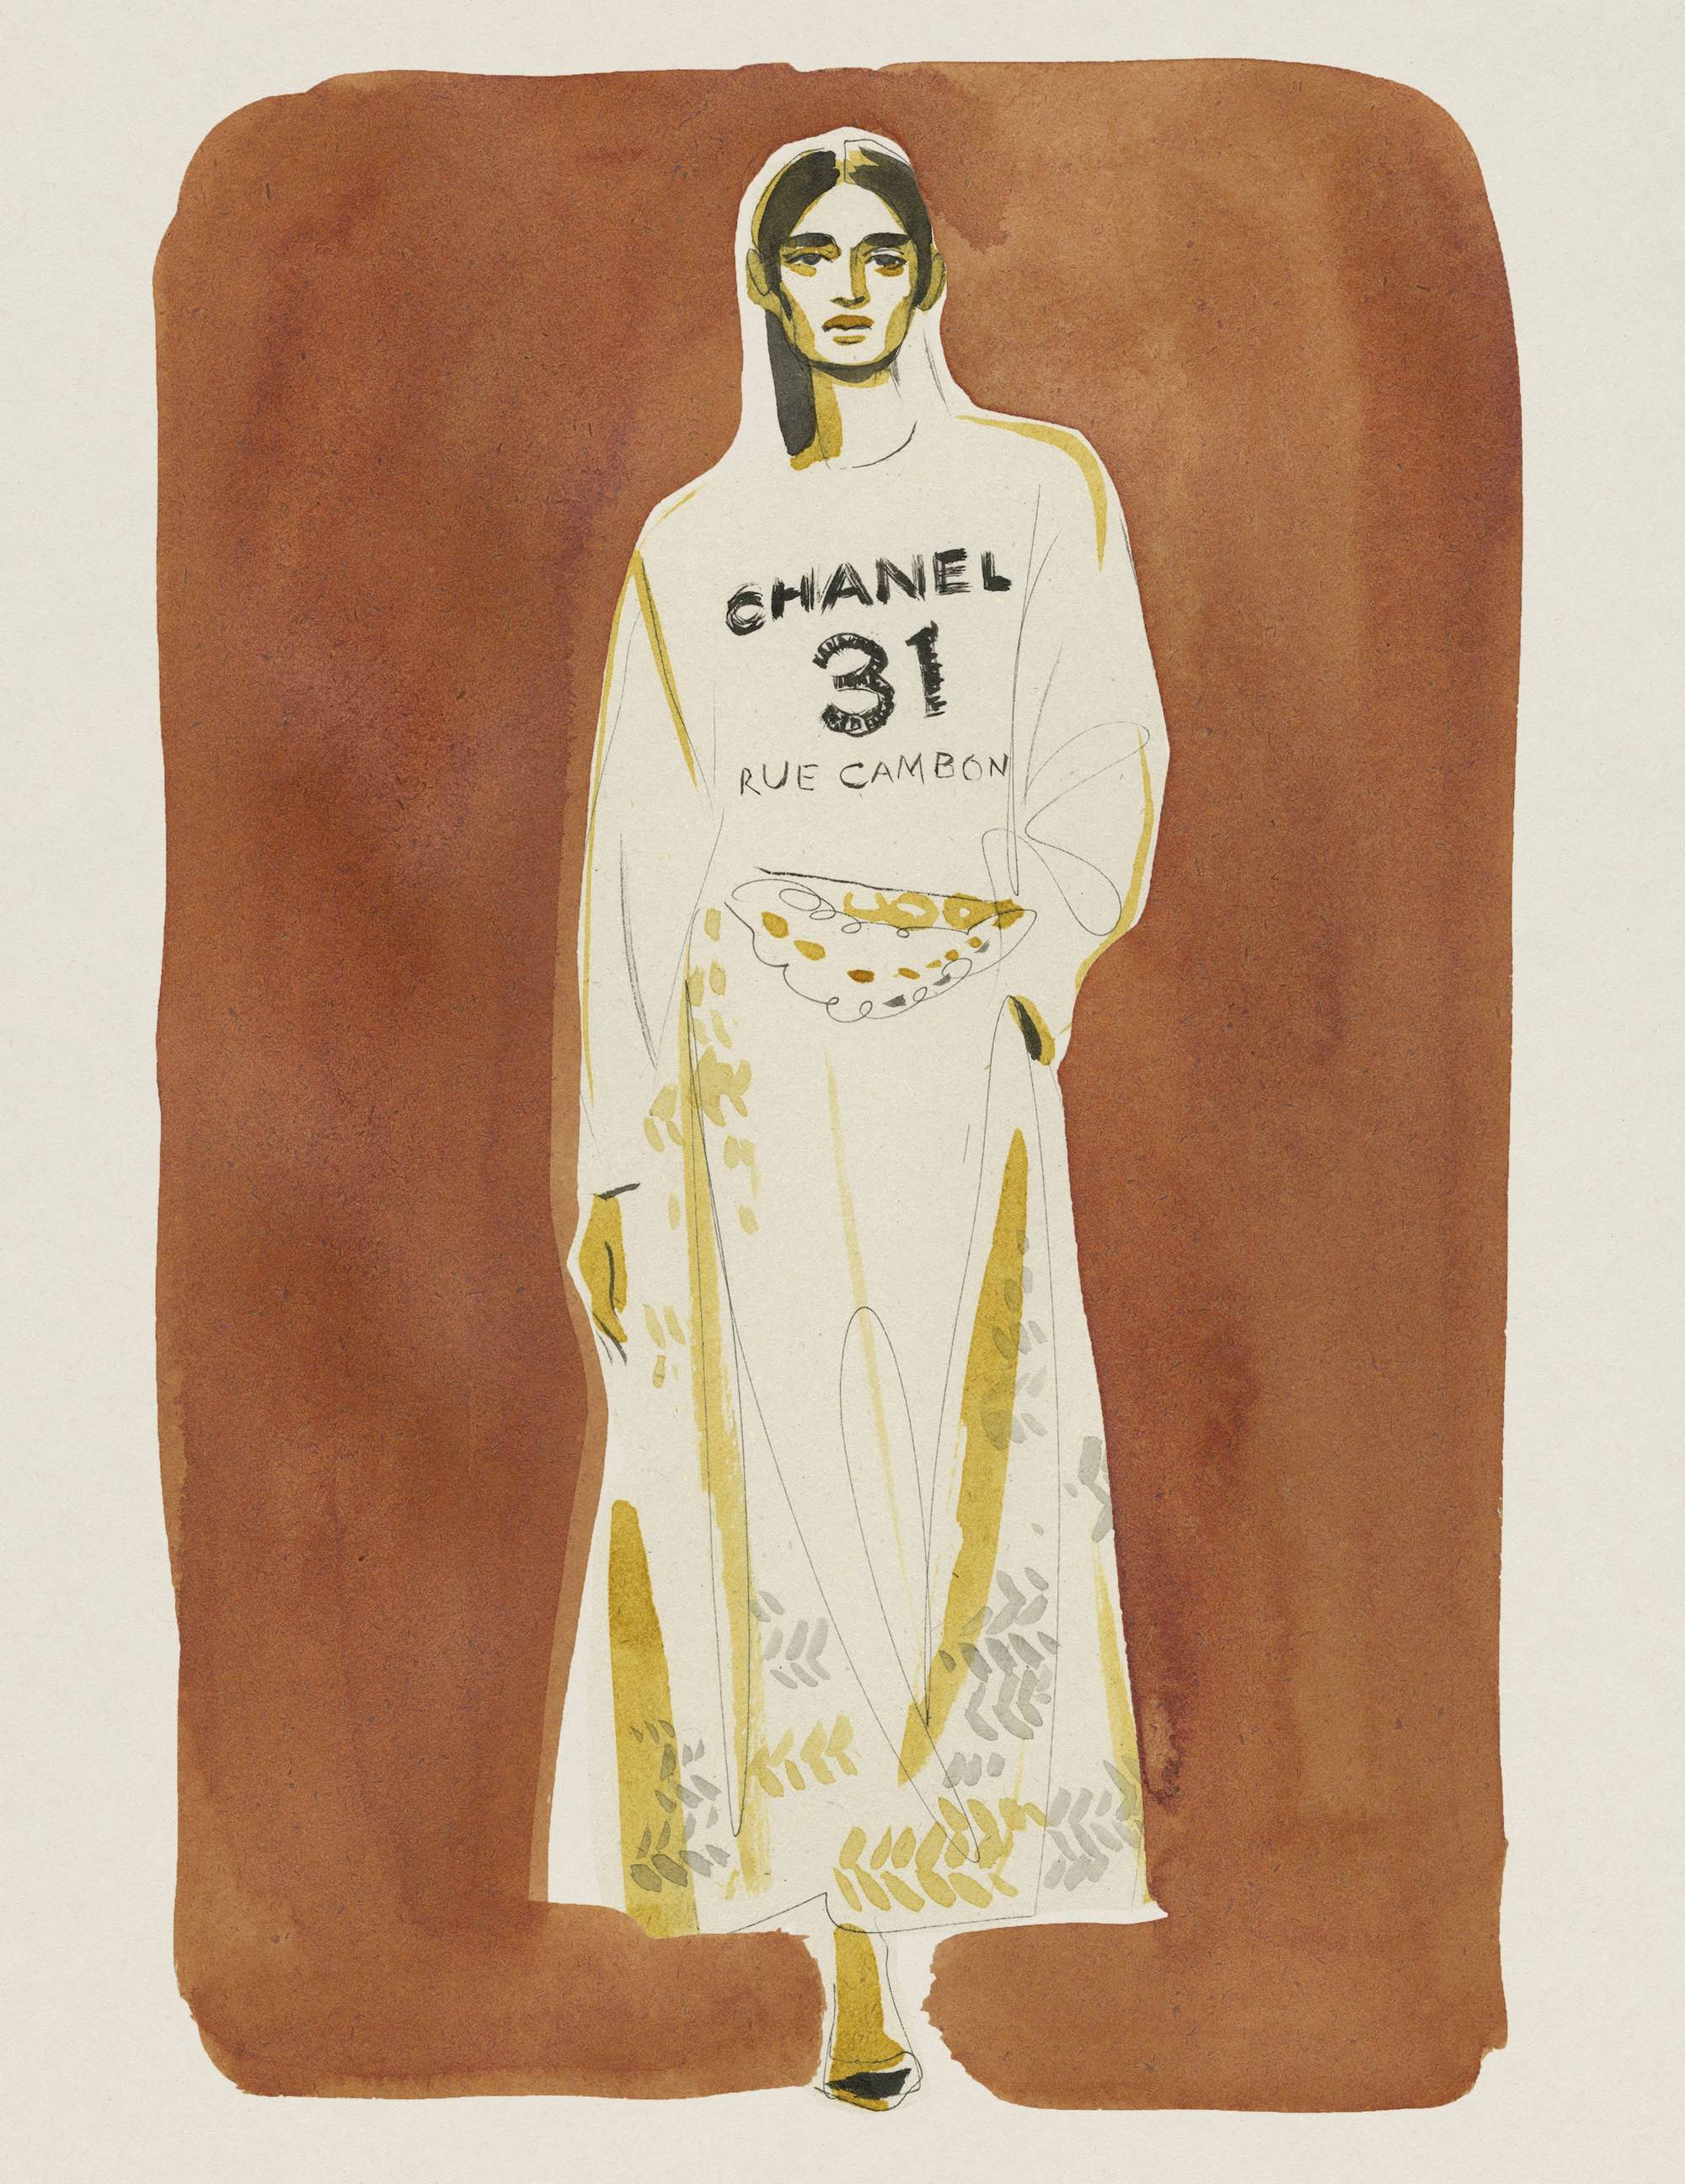 Chanel illustrated cover brown drawing